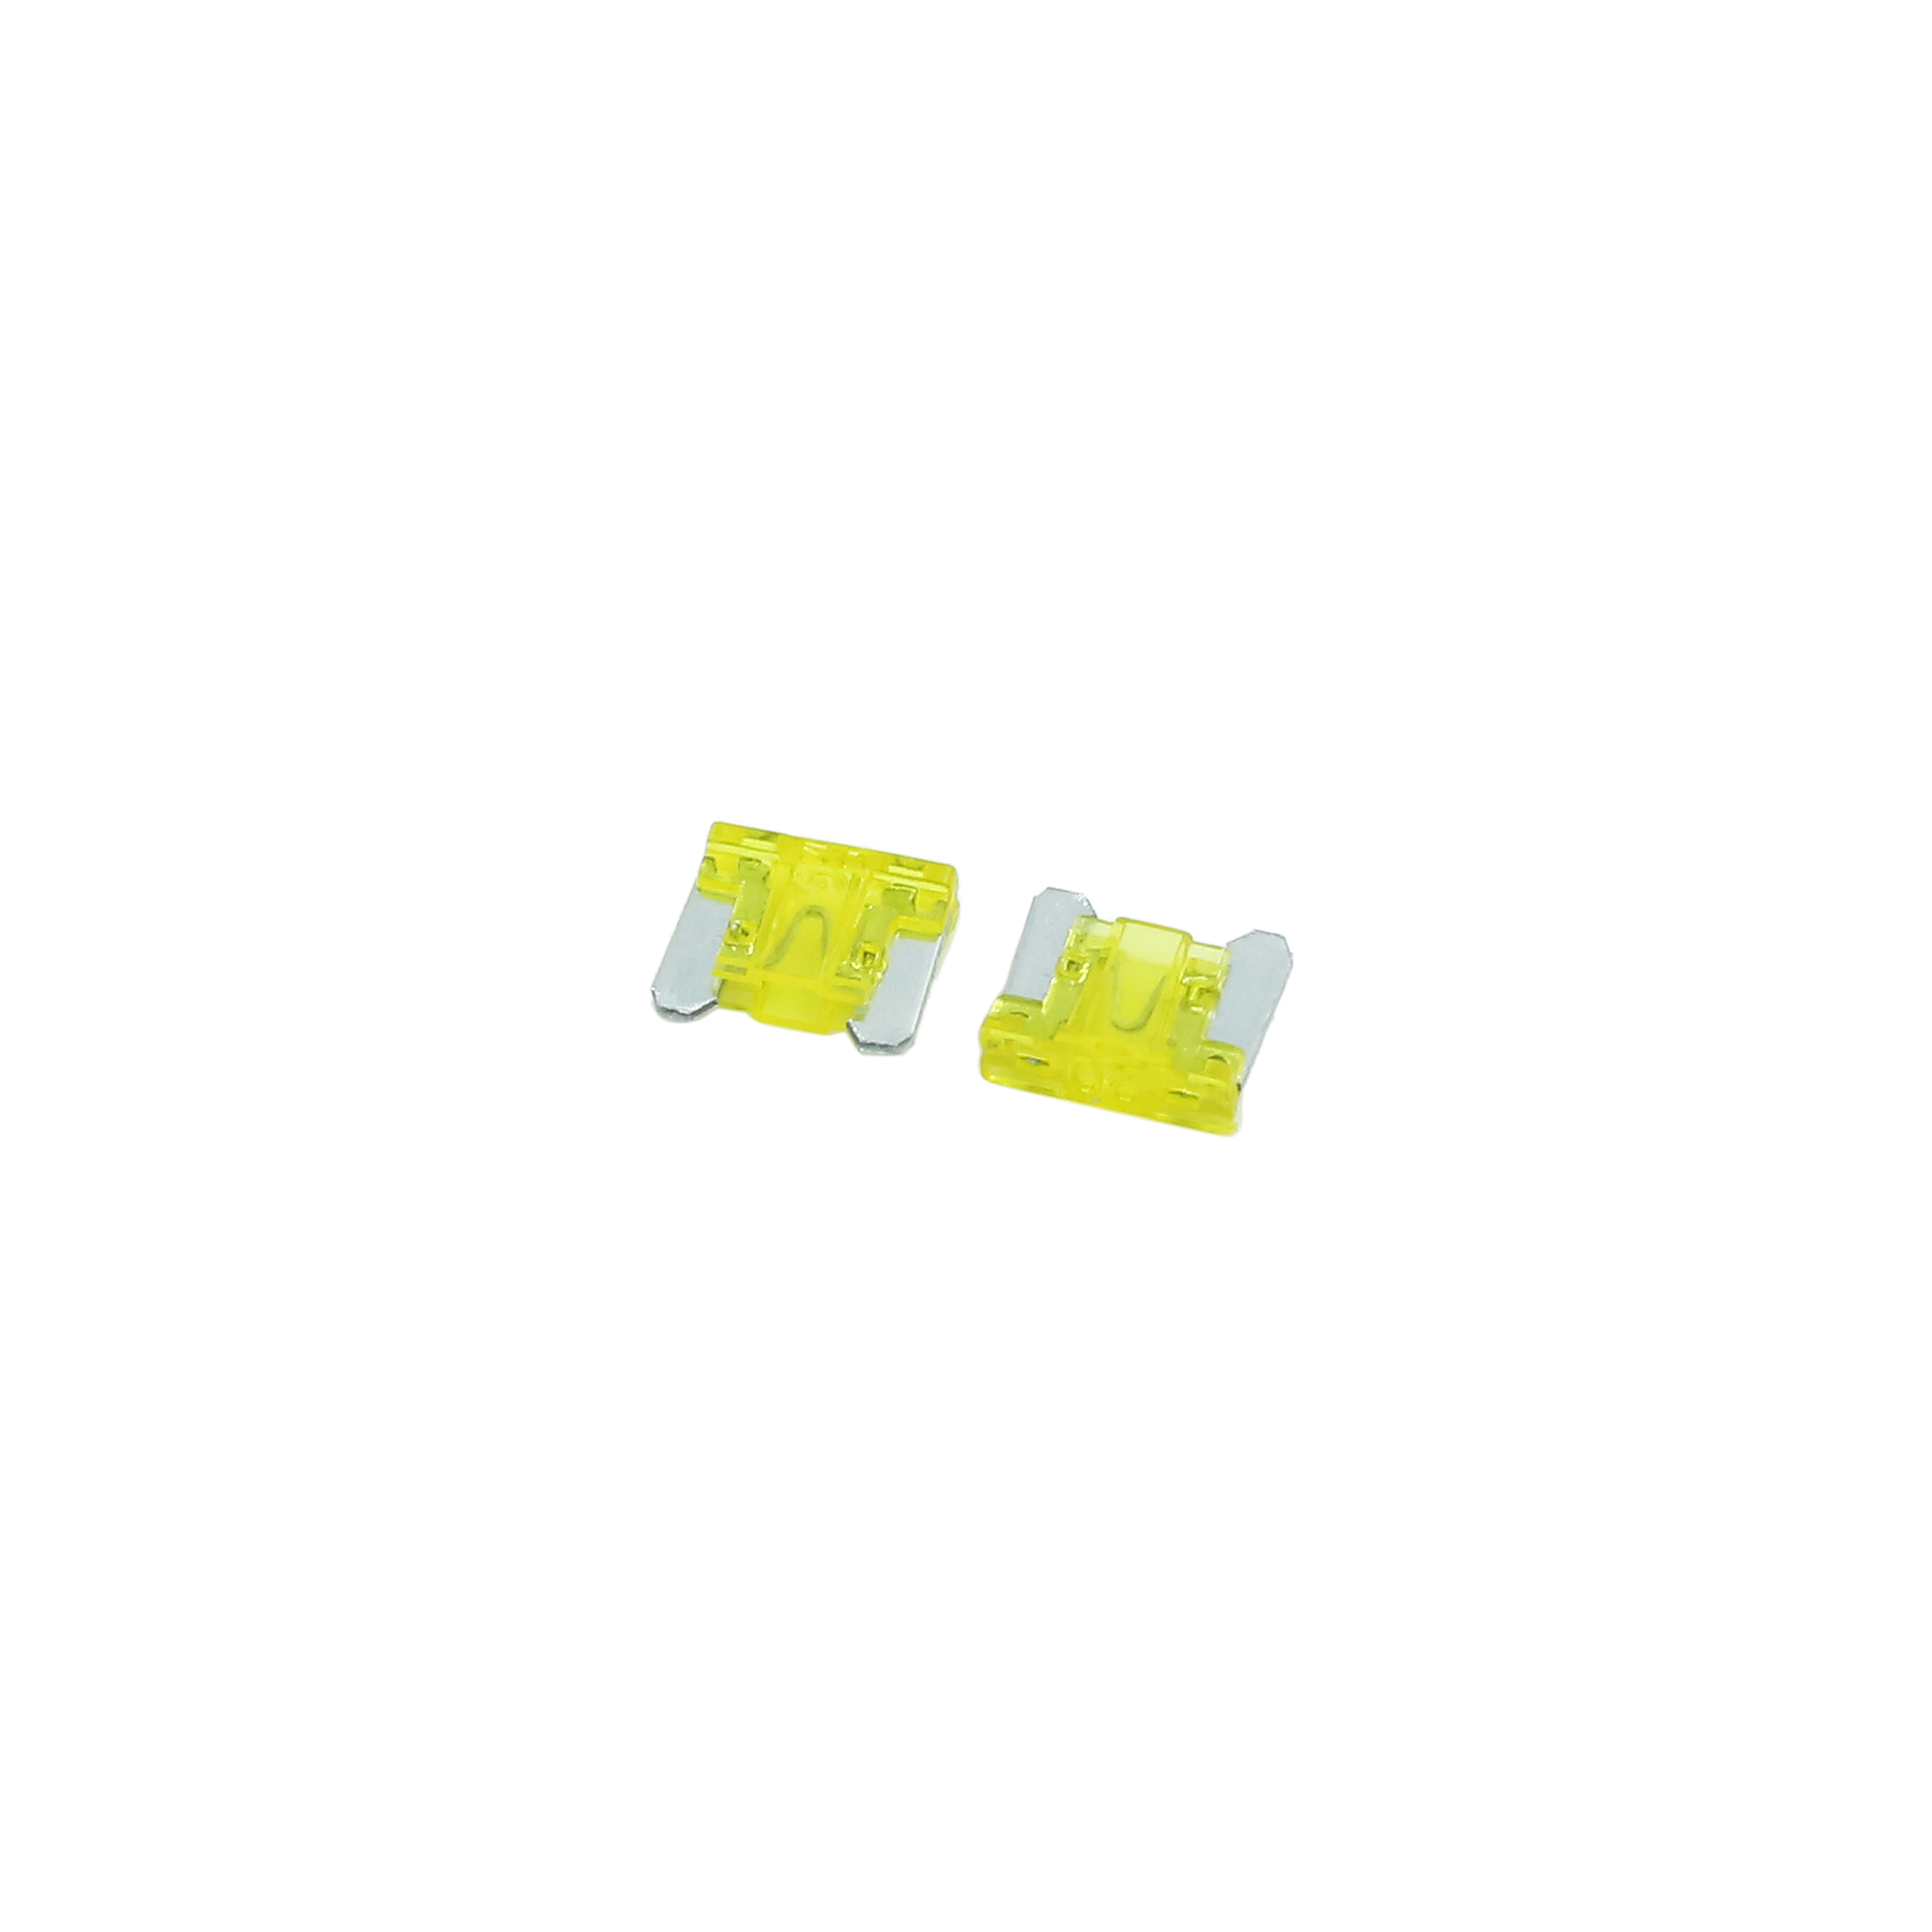 27pcs DC 5V-32V 20A Universal Yellow Car Fuse Replacement Blade Type ATM Fuses - image 1 of 2